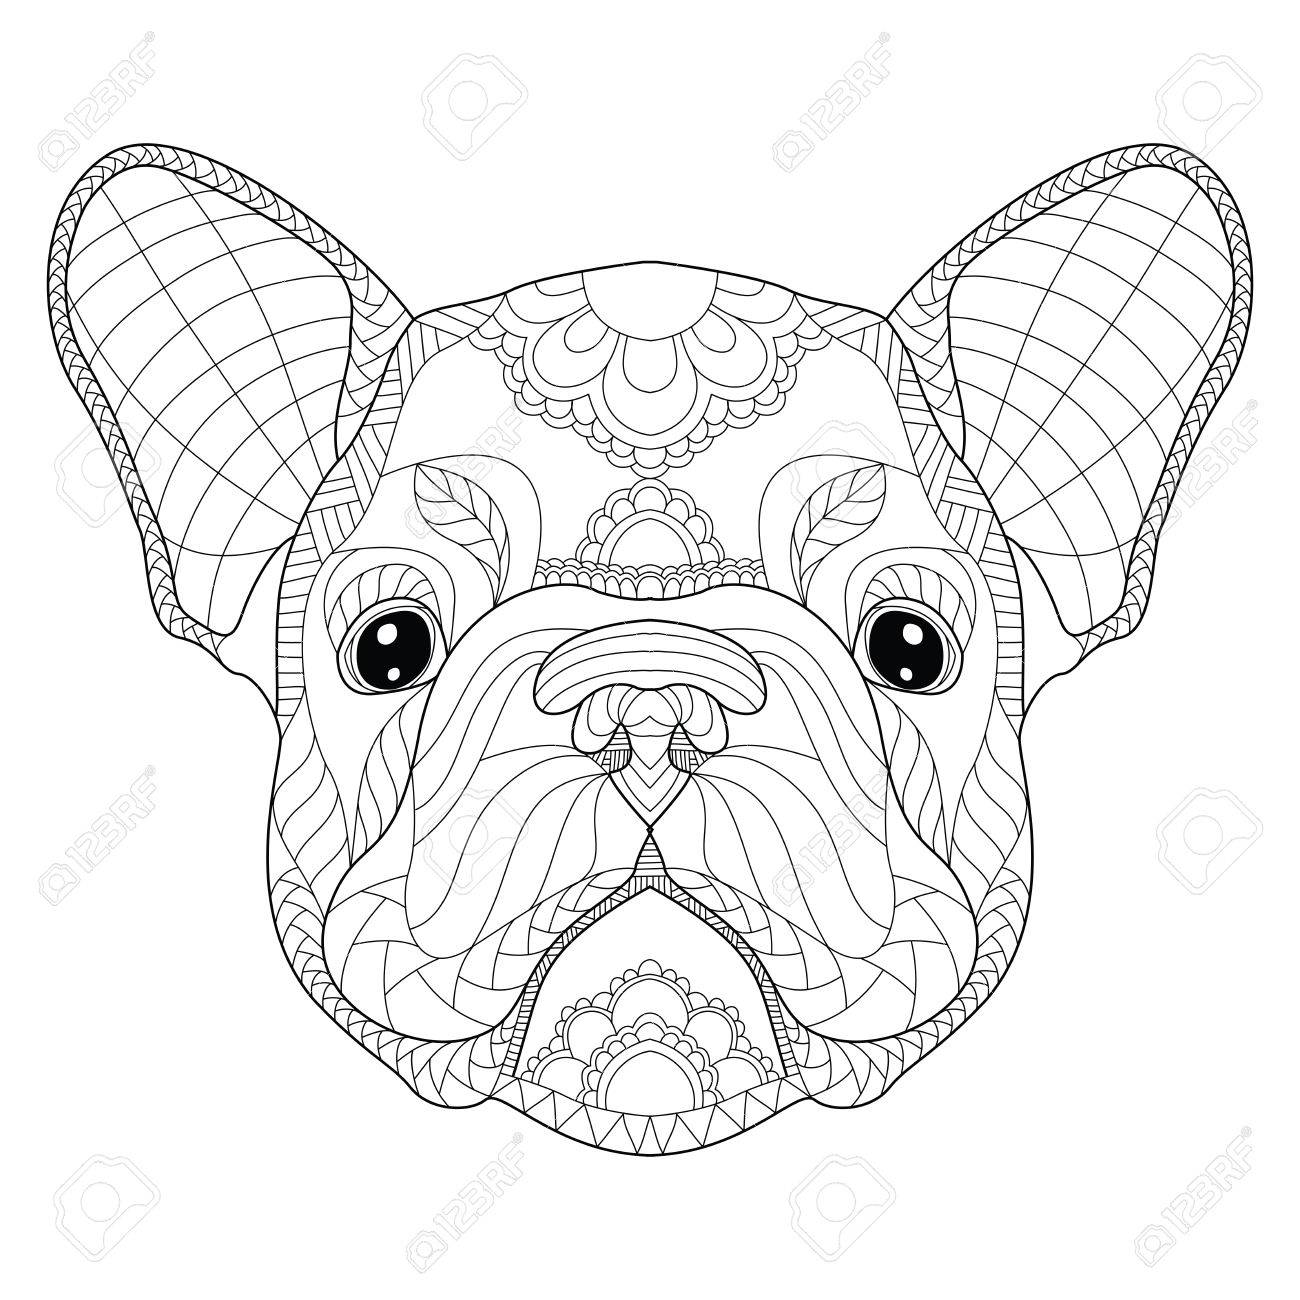 French bulldog puppy head zentangle stylized, vector, illustration, freehand pencil, pattern. - 80835459